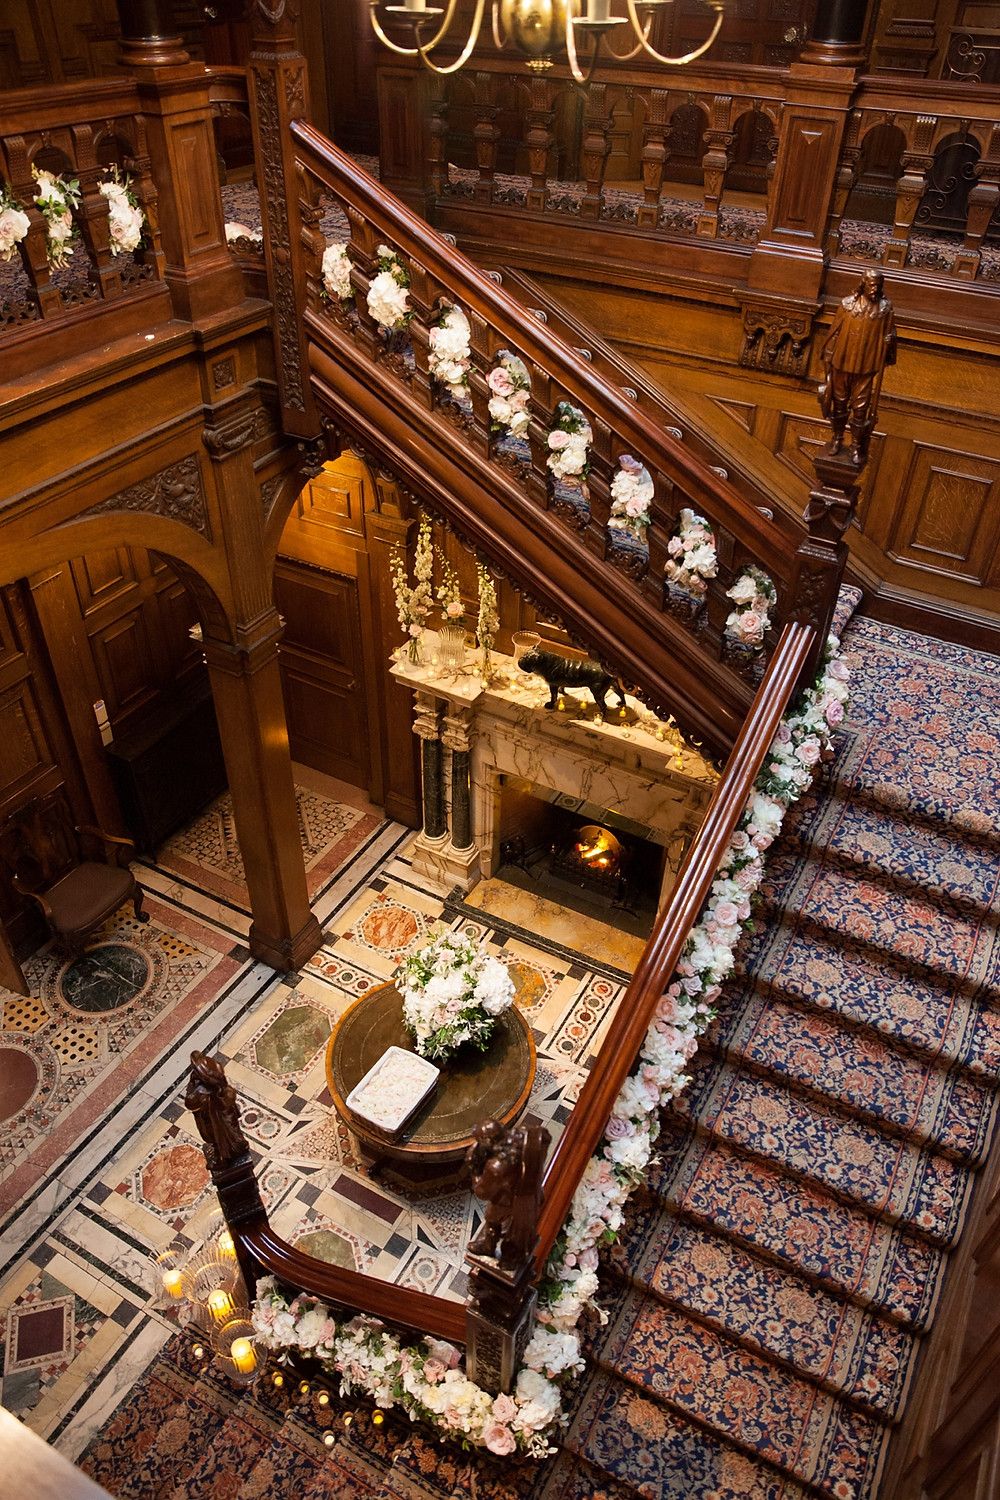 Shot from above showing mahogany staircase and floral installation of roses, peonies and orchids flowing down the sides of it